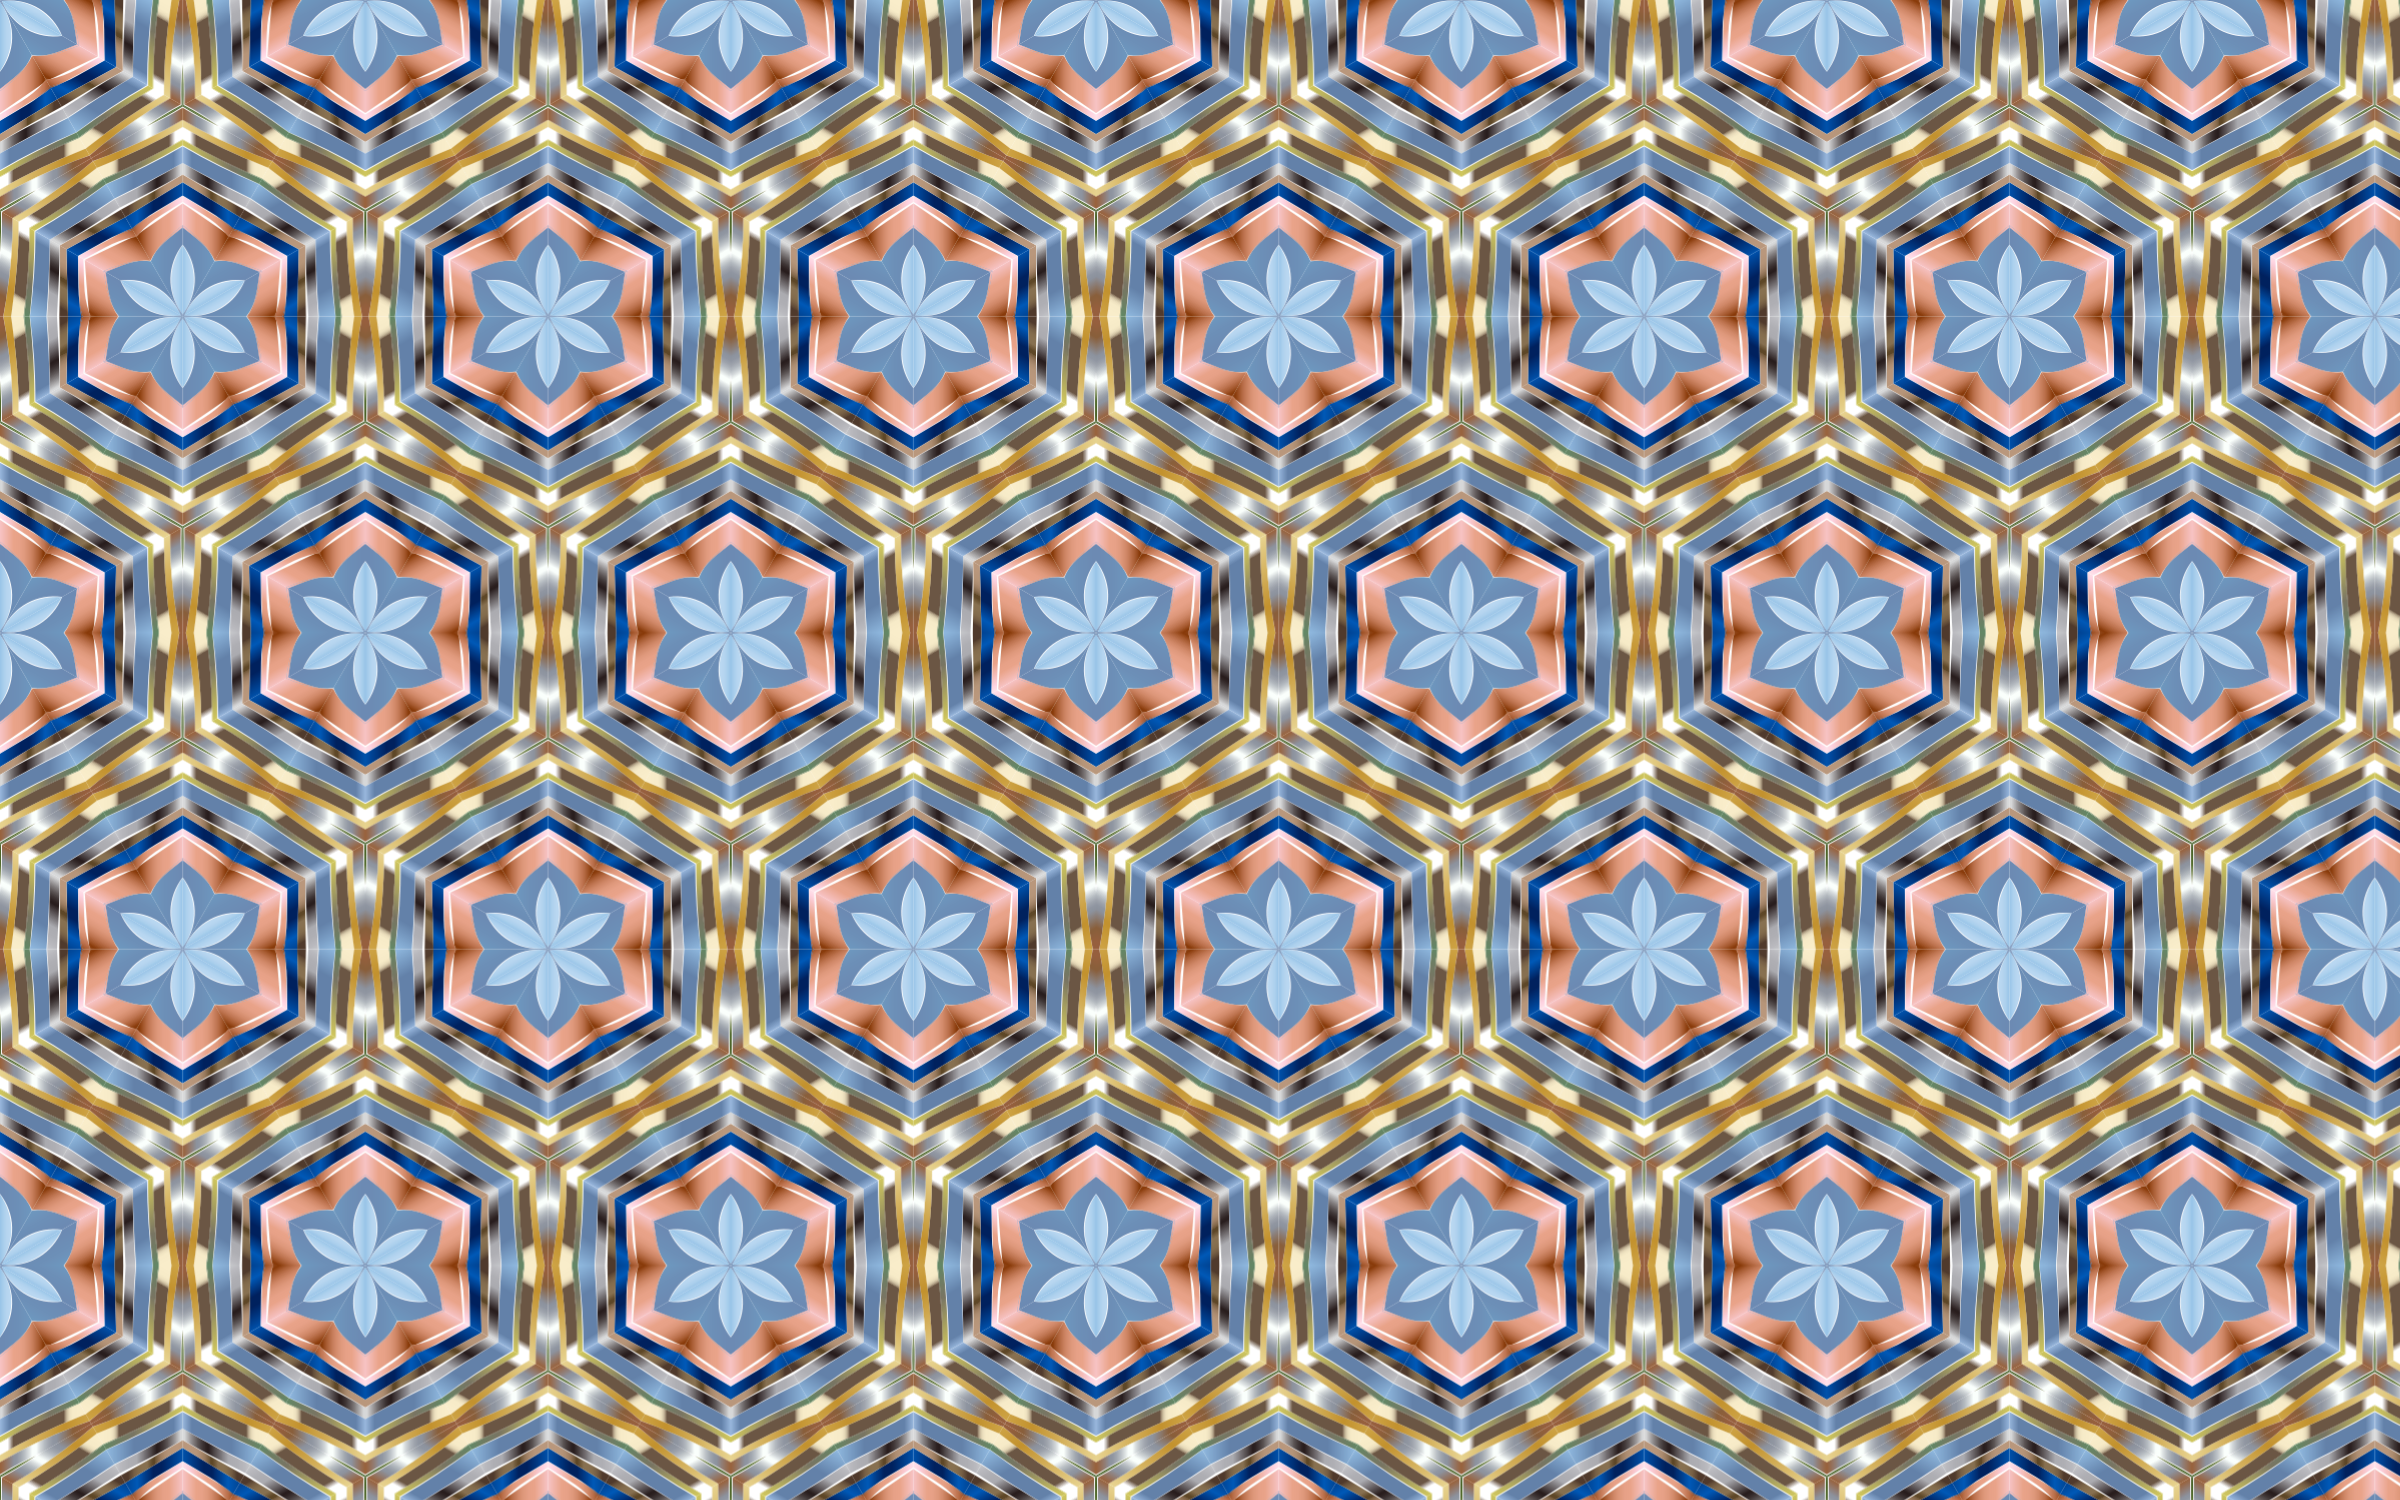 Seamless Pattern 63 by GDJ